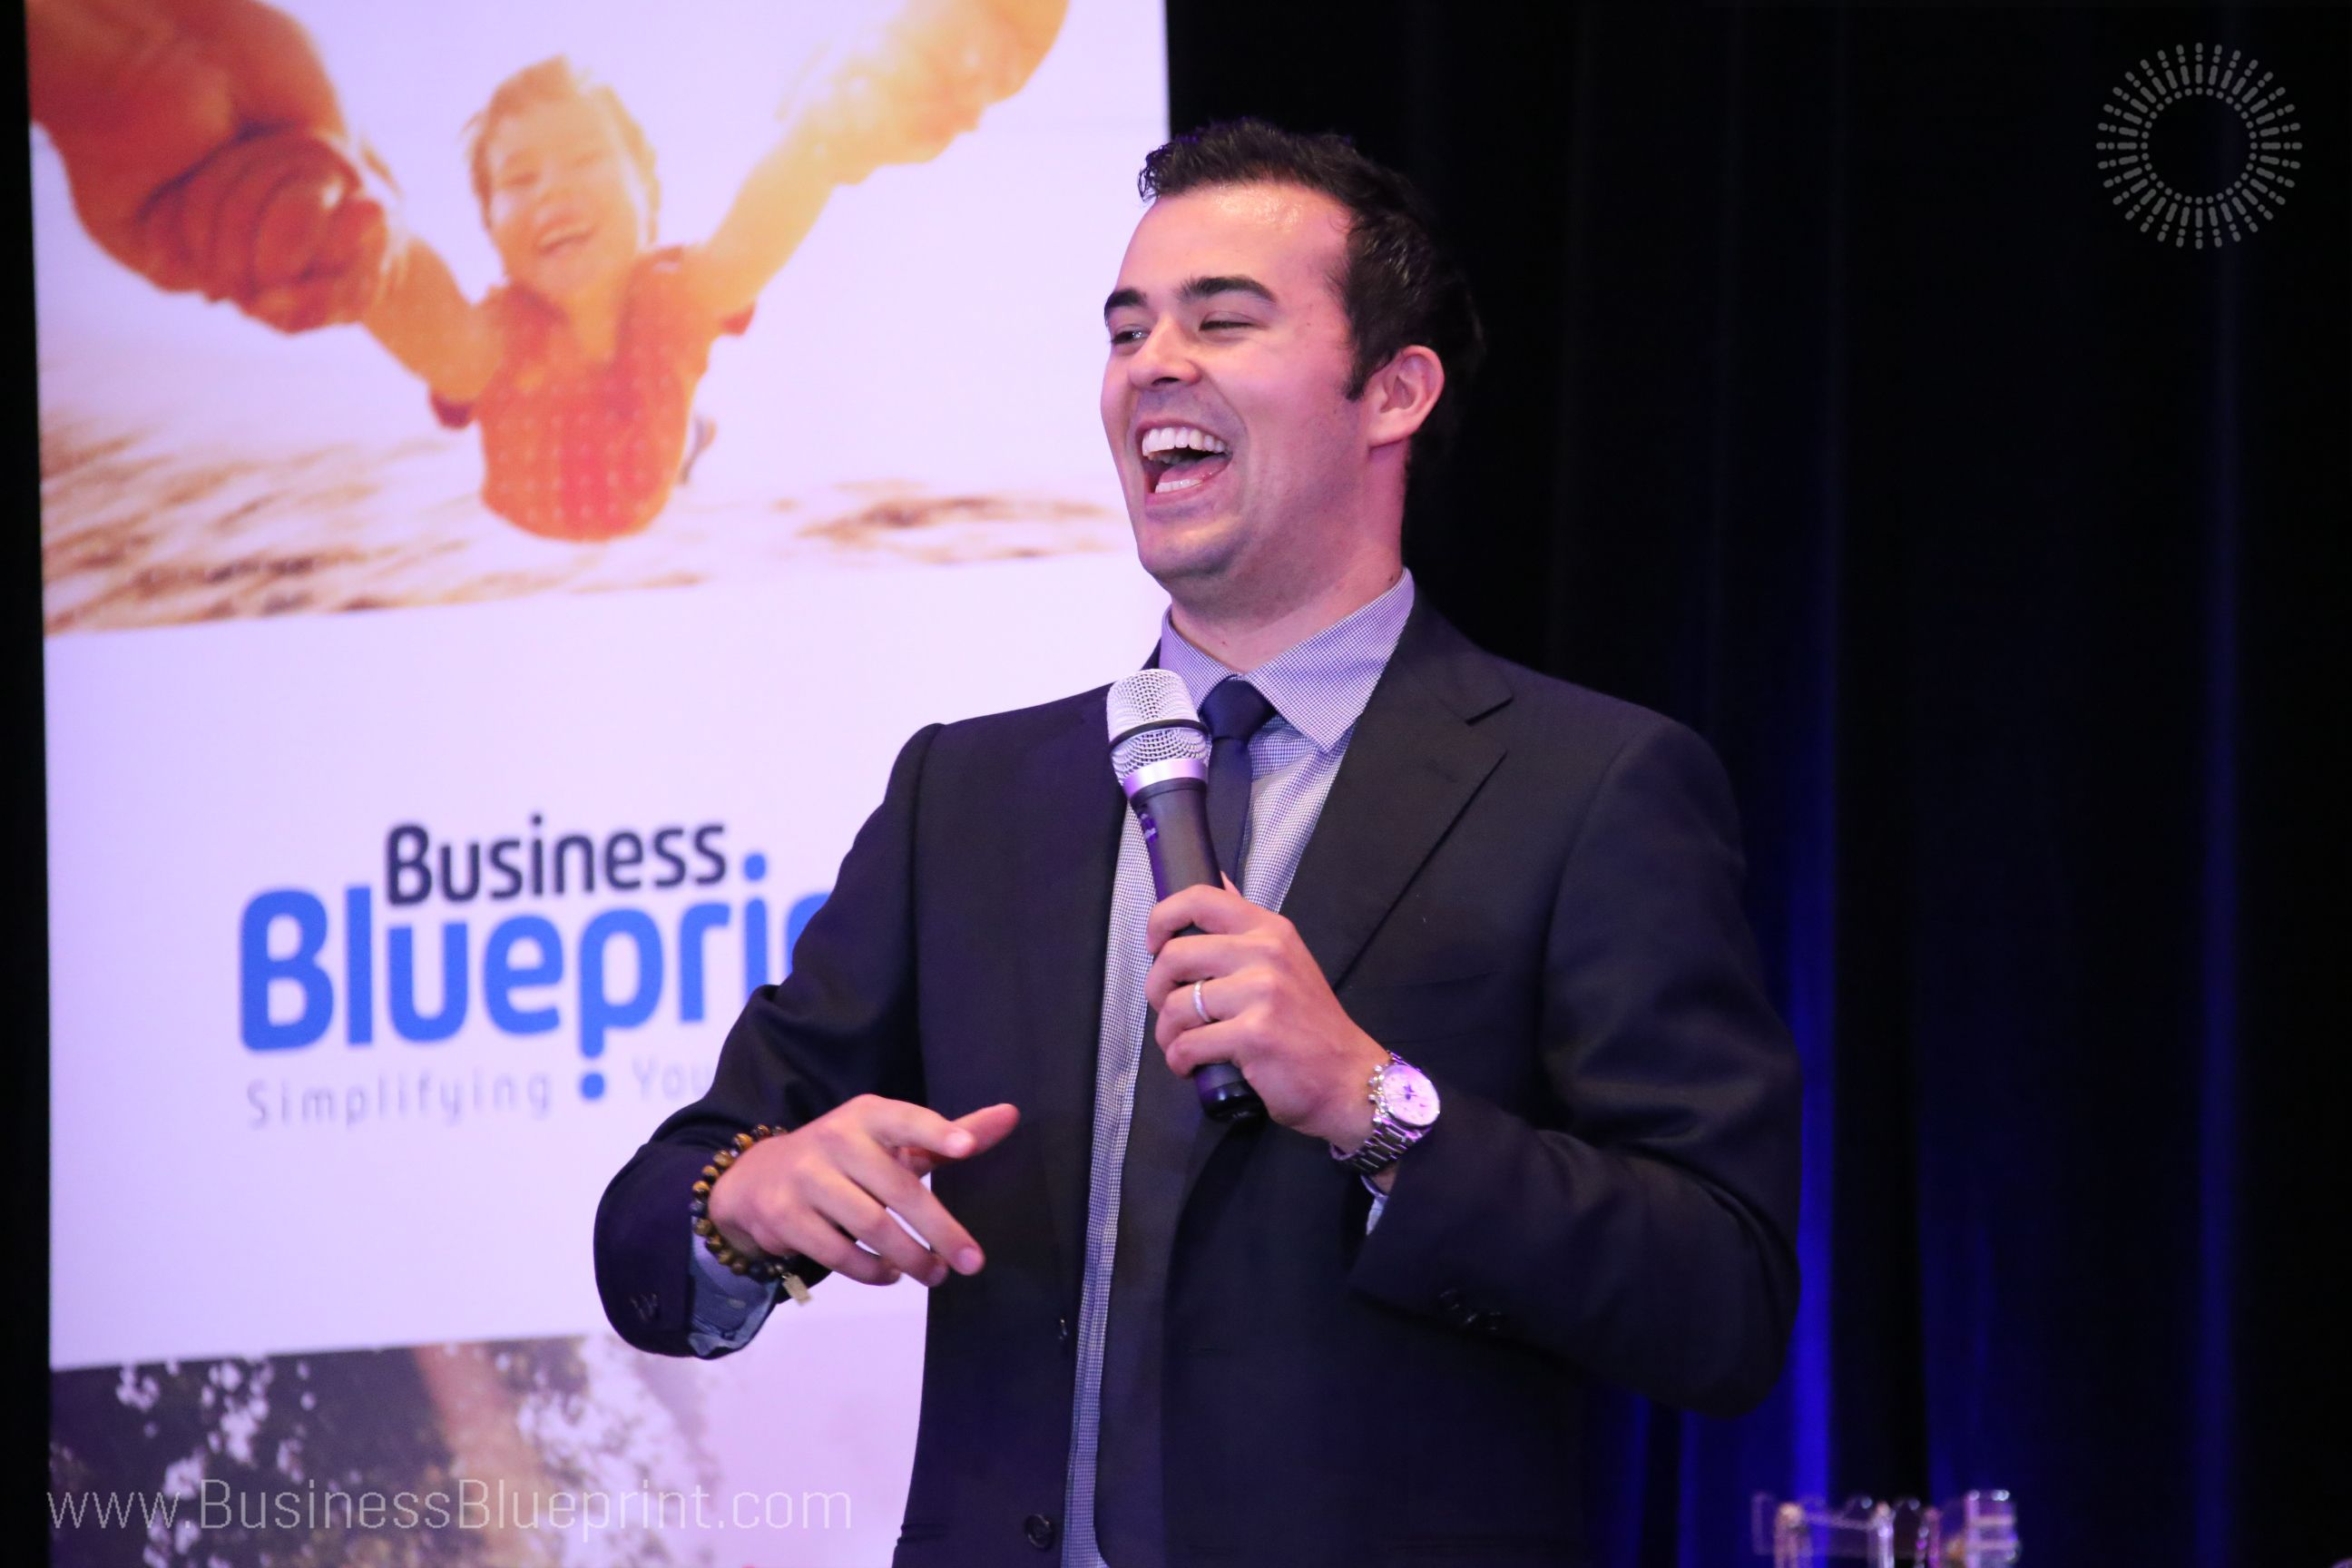 1 day business growth workshop with dale beaumont in brisbane cbd dale beaumont is an award winning technology entrepreneur international speaker and author of 16 best selling books malvernweather Image collections